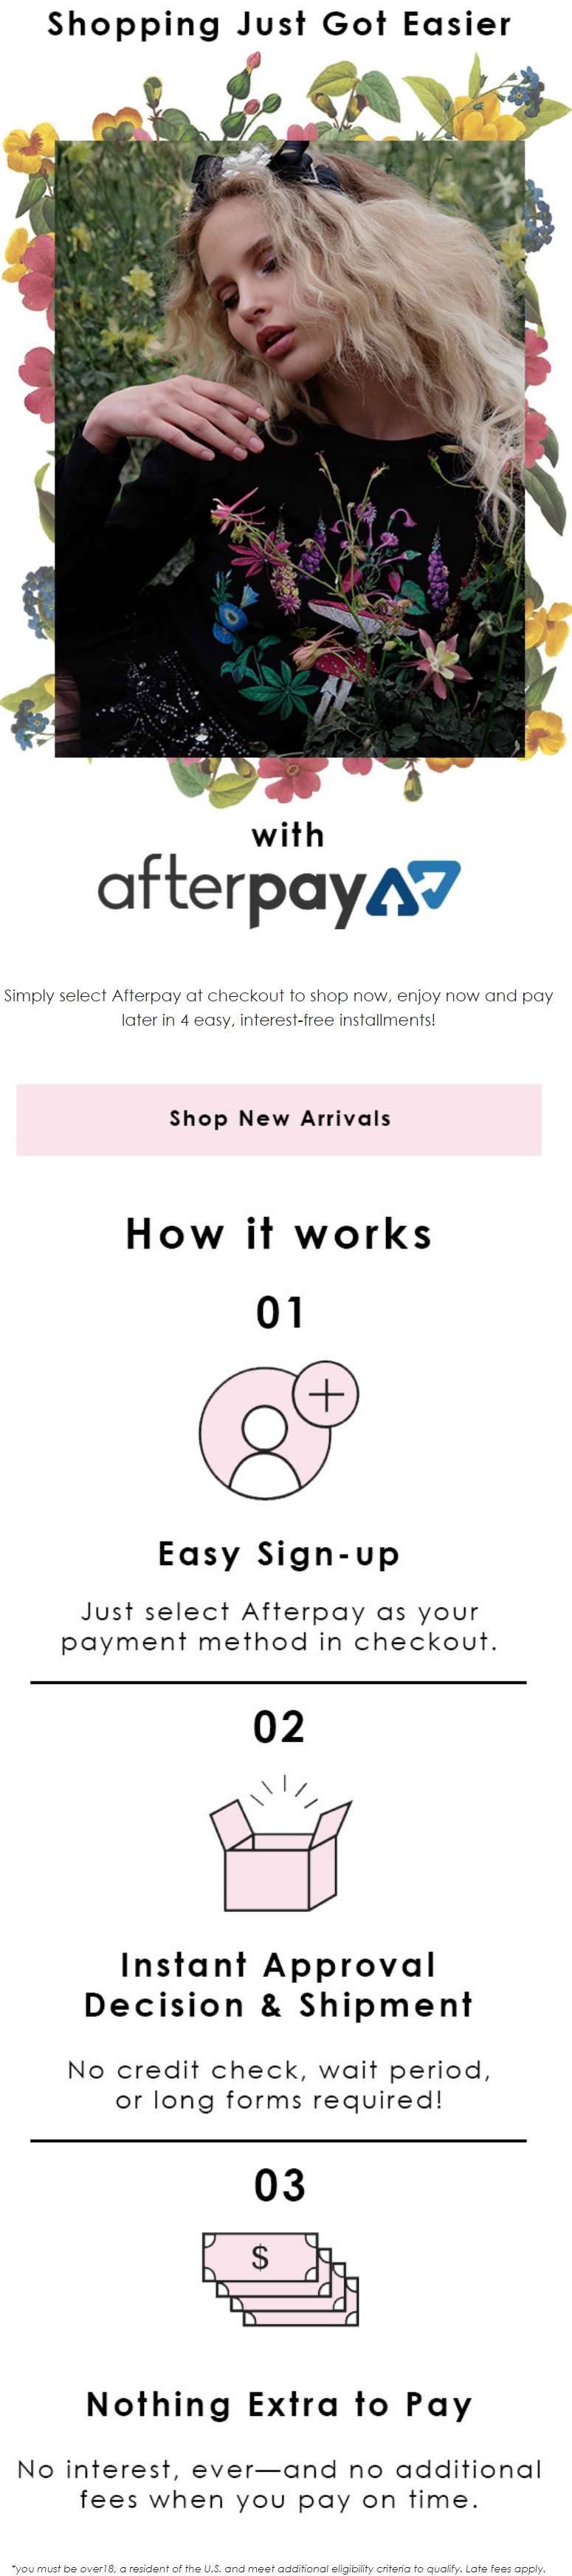 Simply select Afterpay at checkout to shop now, enjoy now and pay later in 4 easy, interest-free ins...